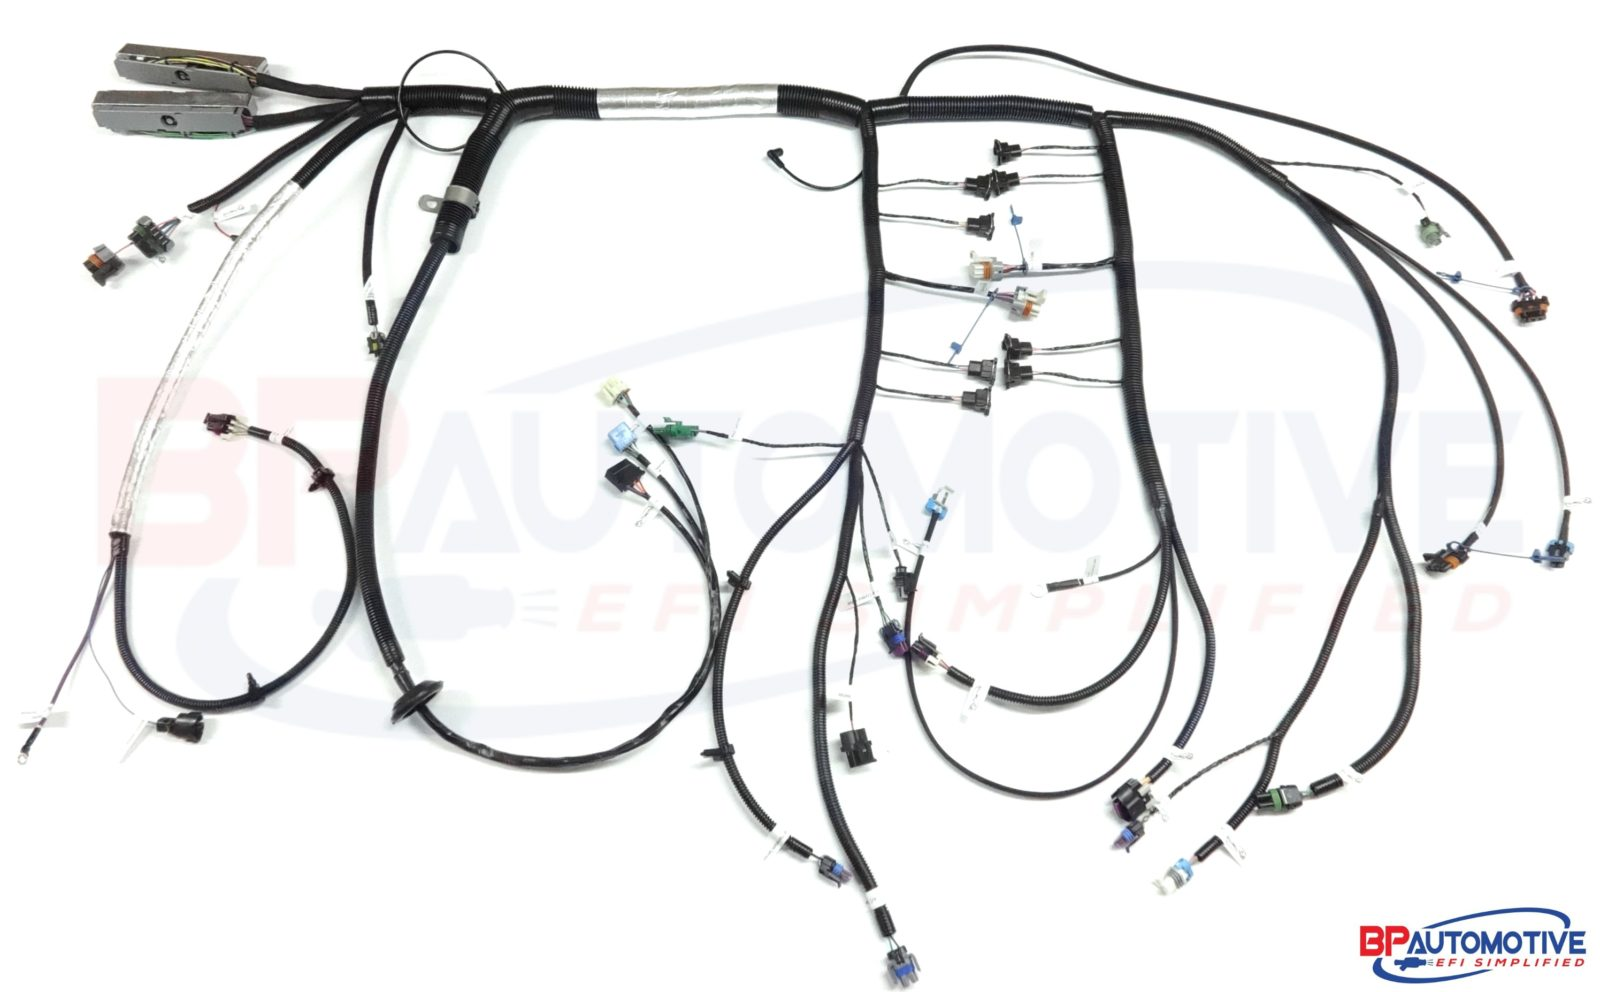 Lt1 F Body Plug And Play 24x Conversion Harness With 4l60e